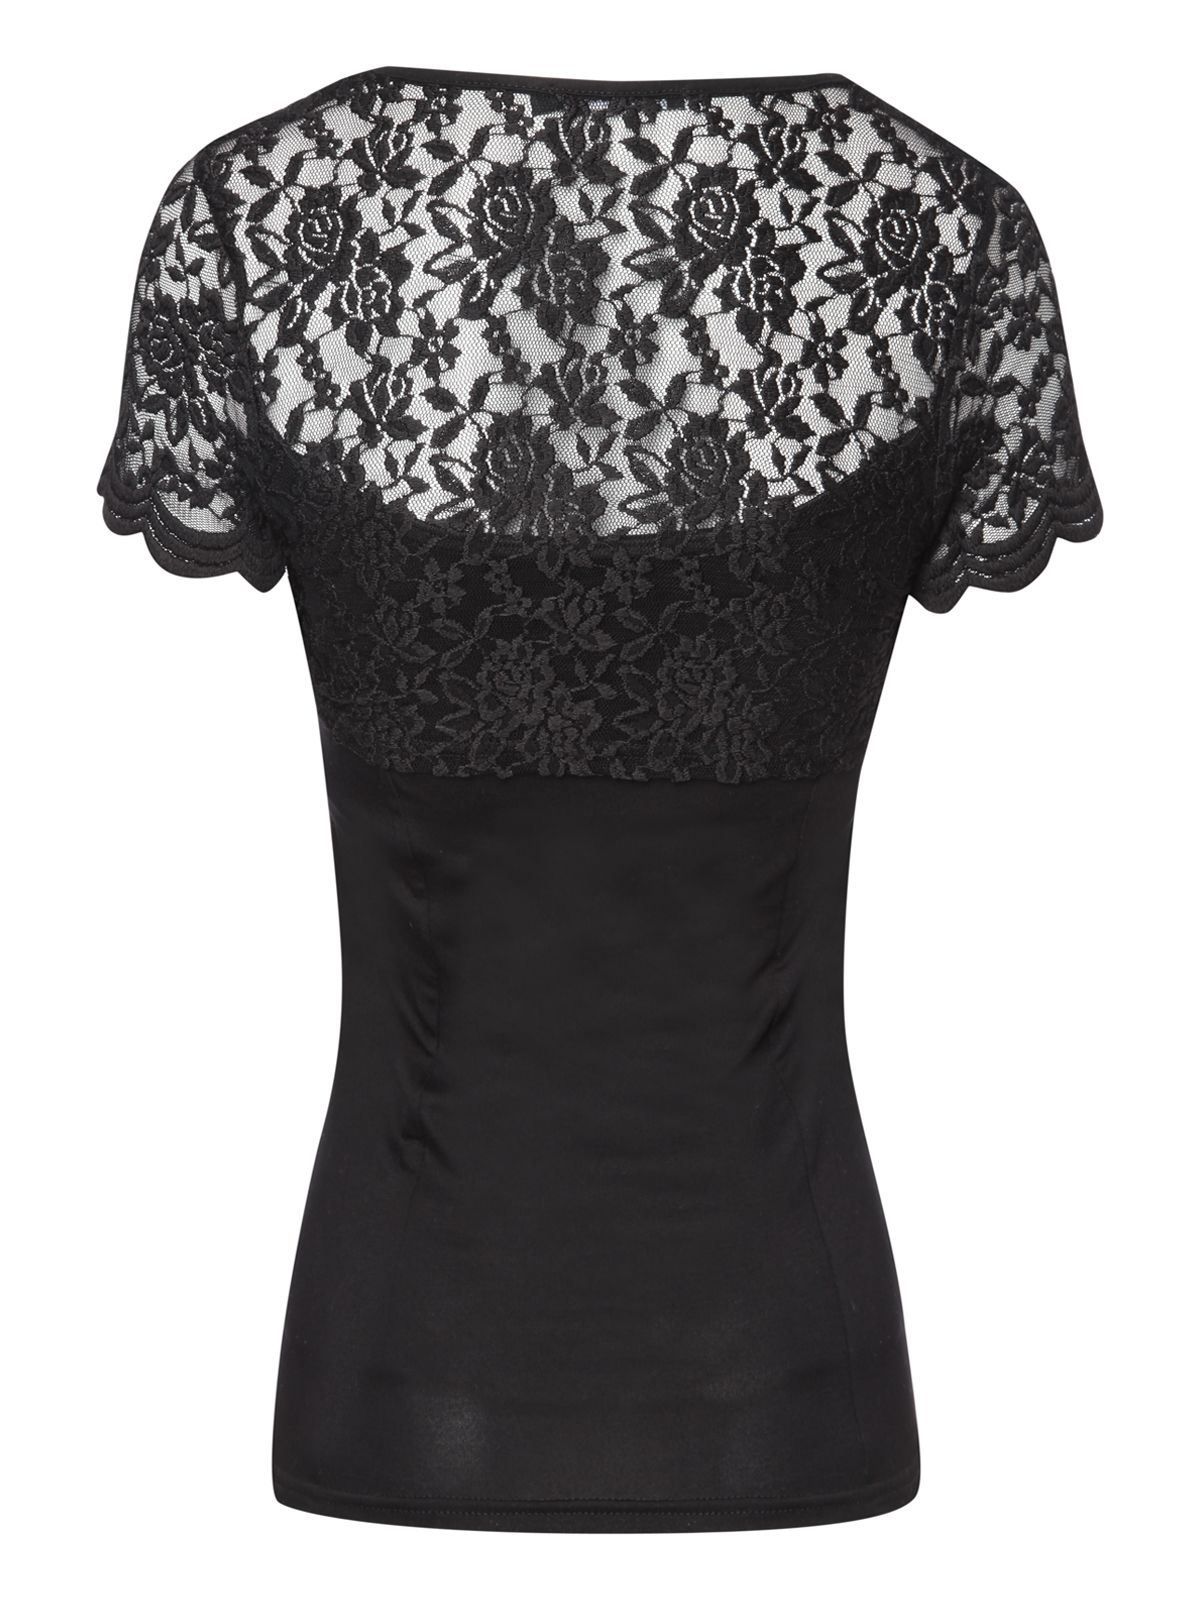 Lace shrug short sleeve top